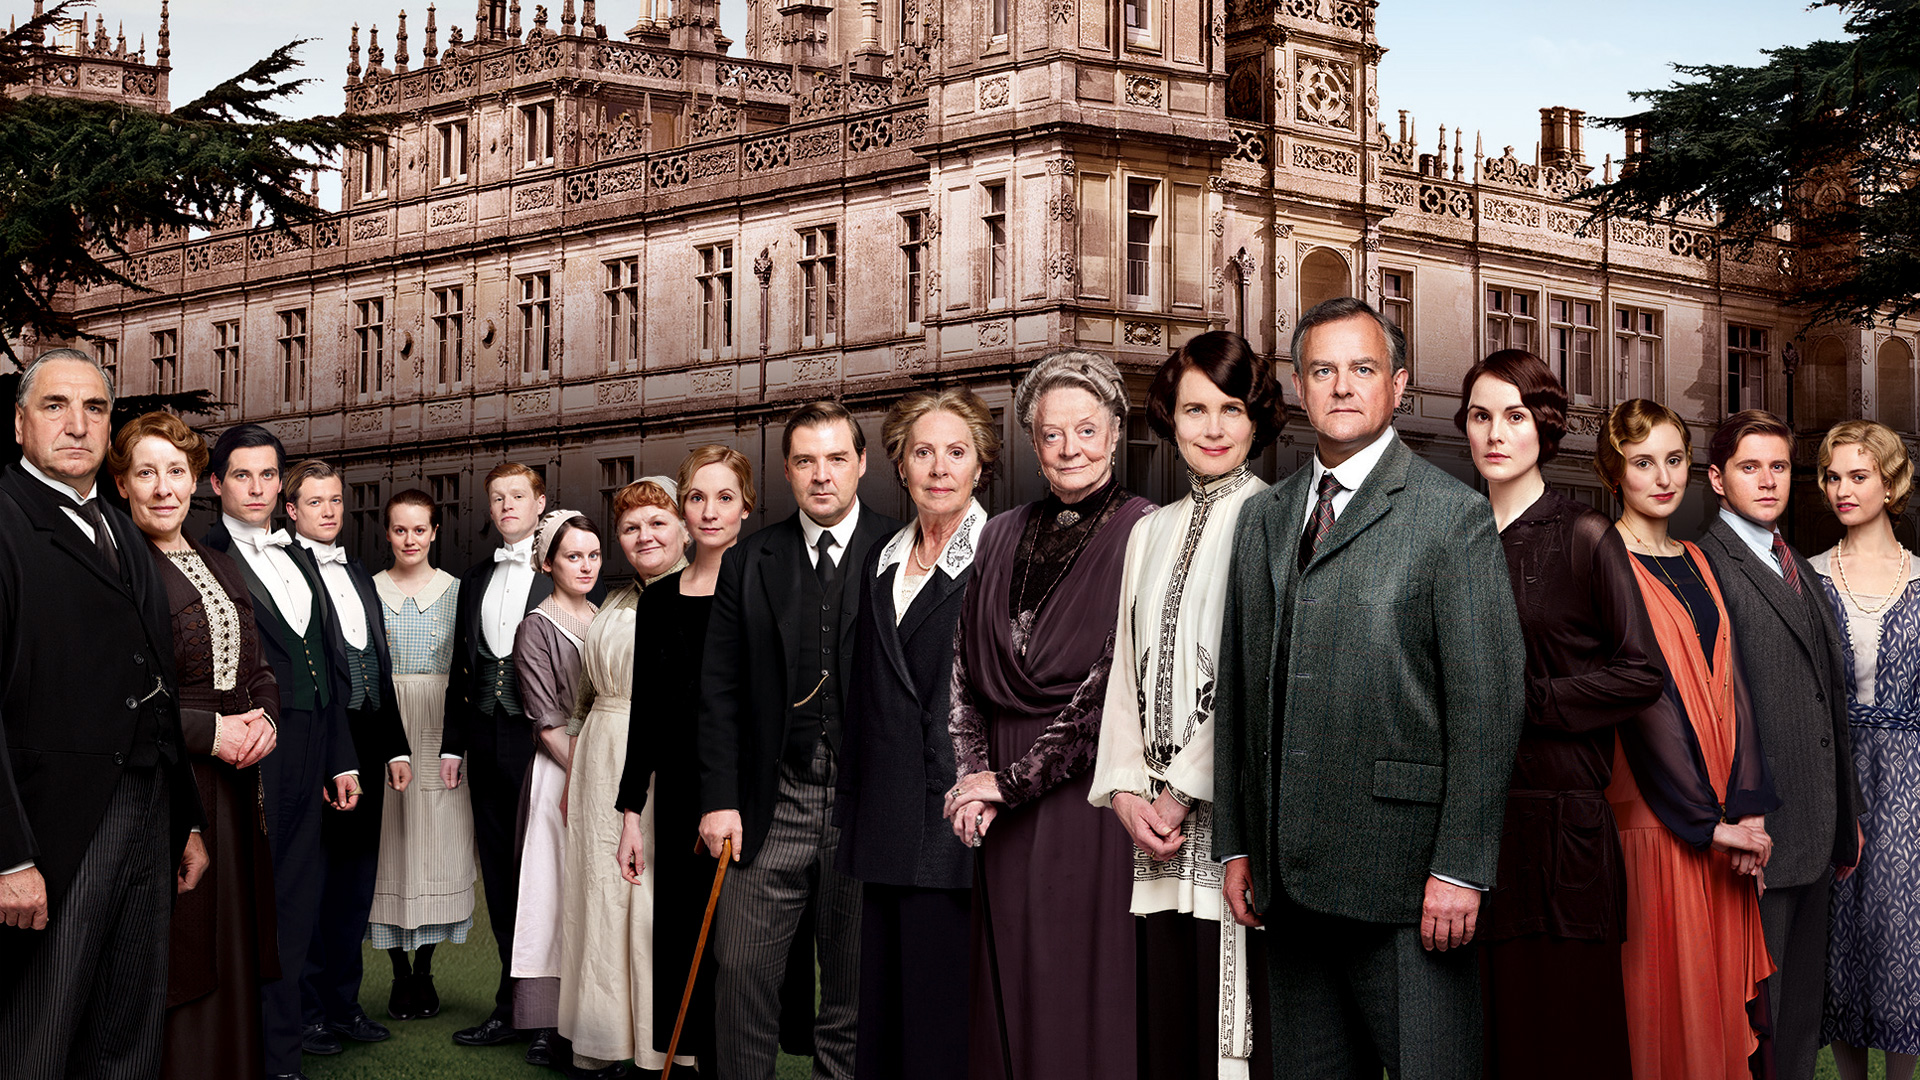 Llega a Canal Once la 4 temporada de 'Downton Abbey'